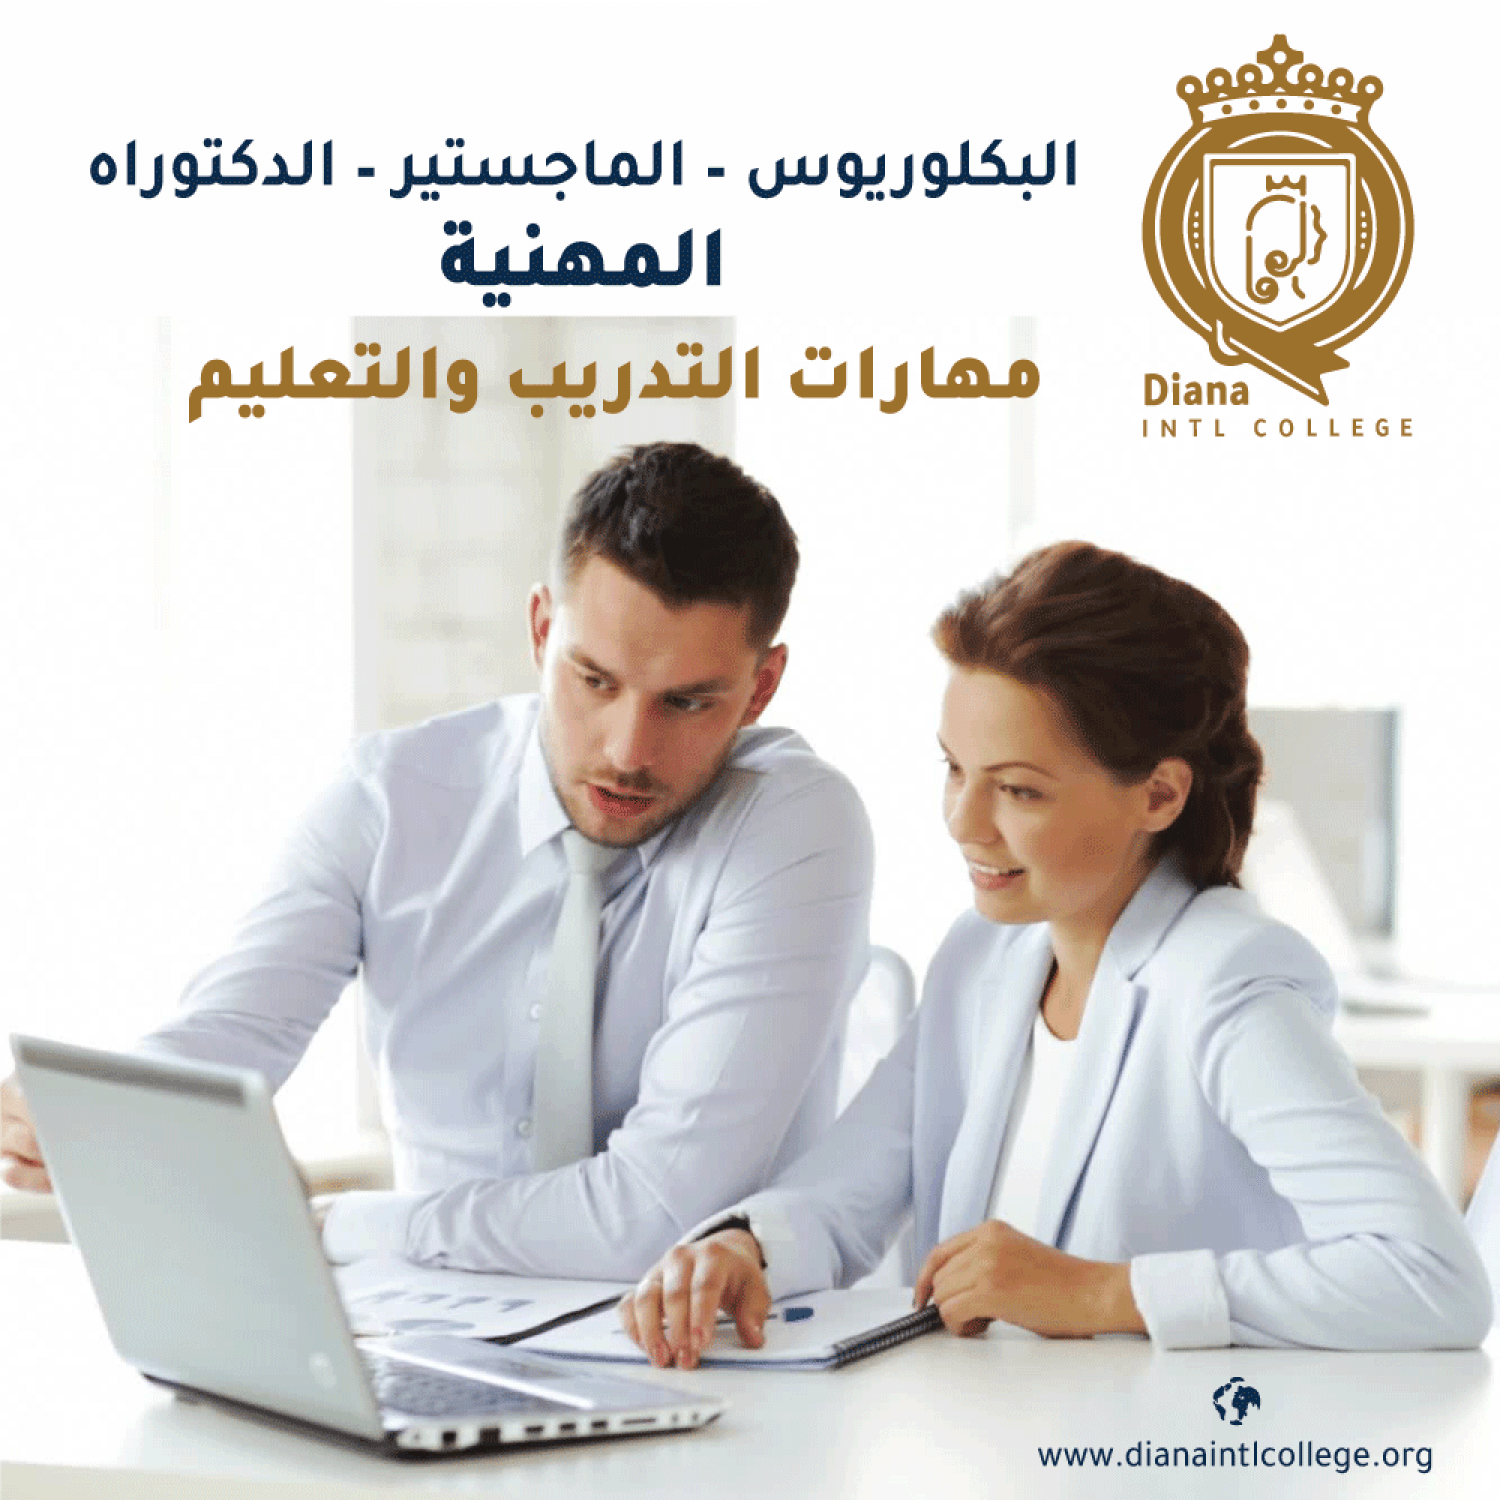 Department of Social Sciences - Training and Education Skills